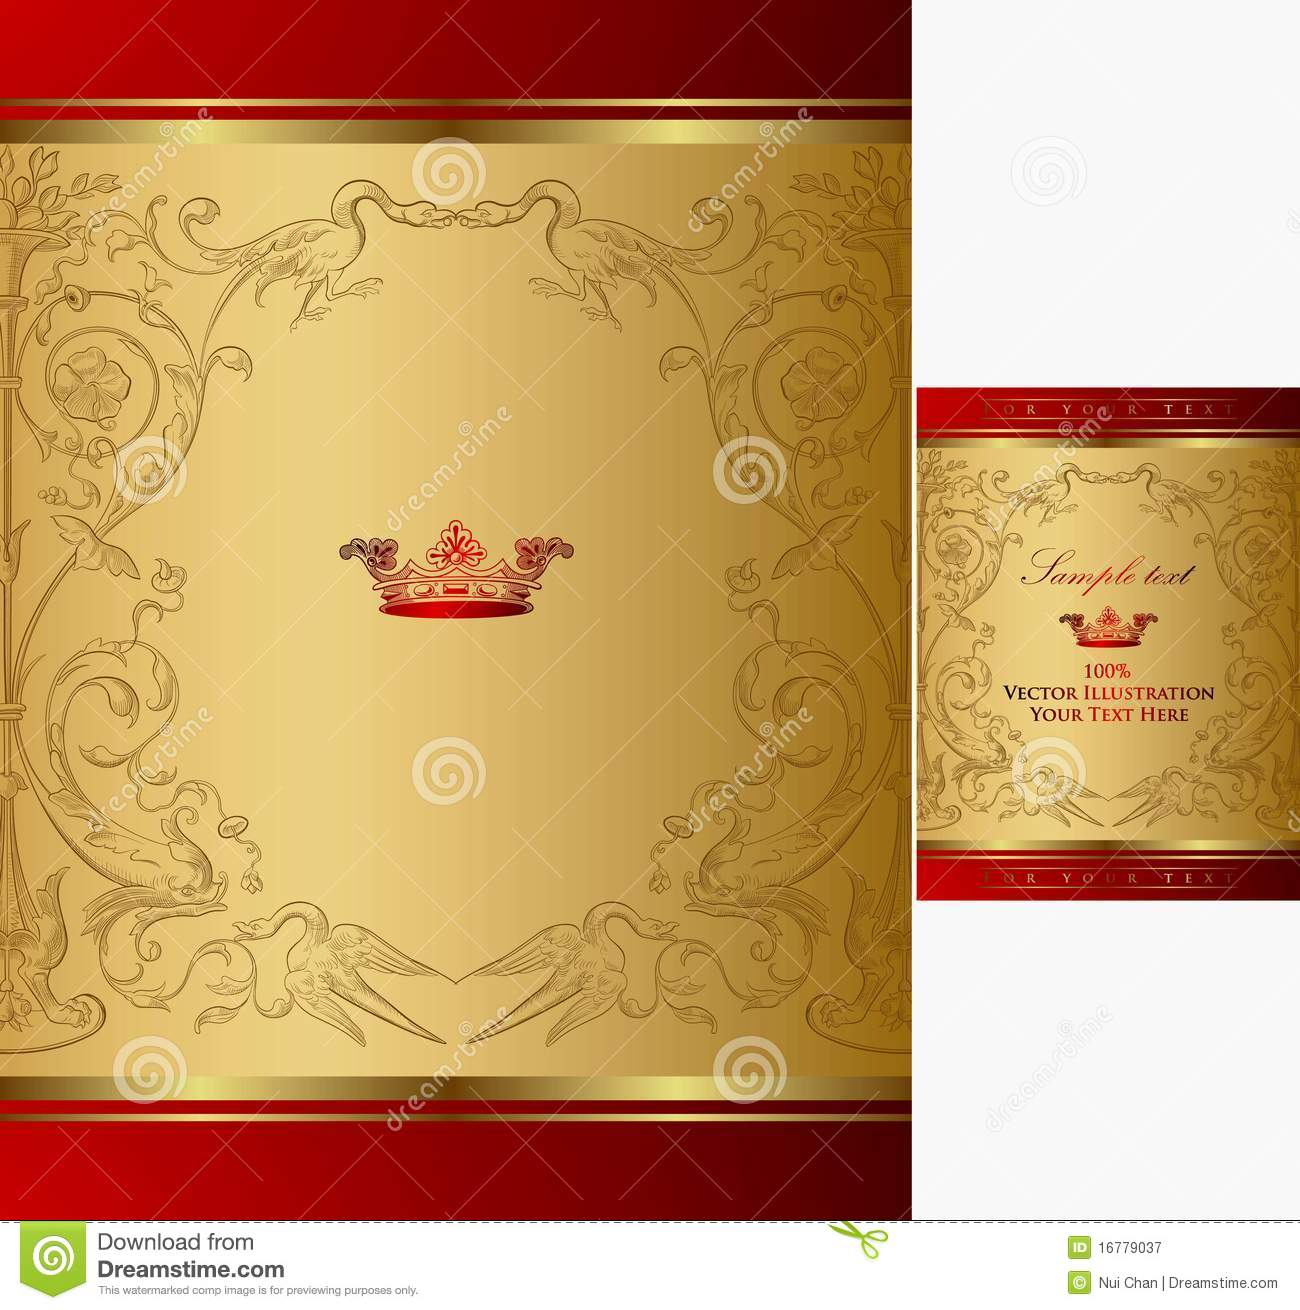 Frame Border Stock Photos And Images  123RF